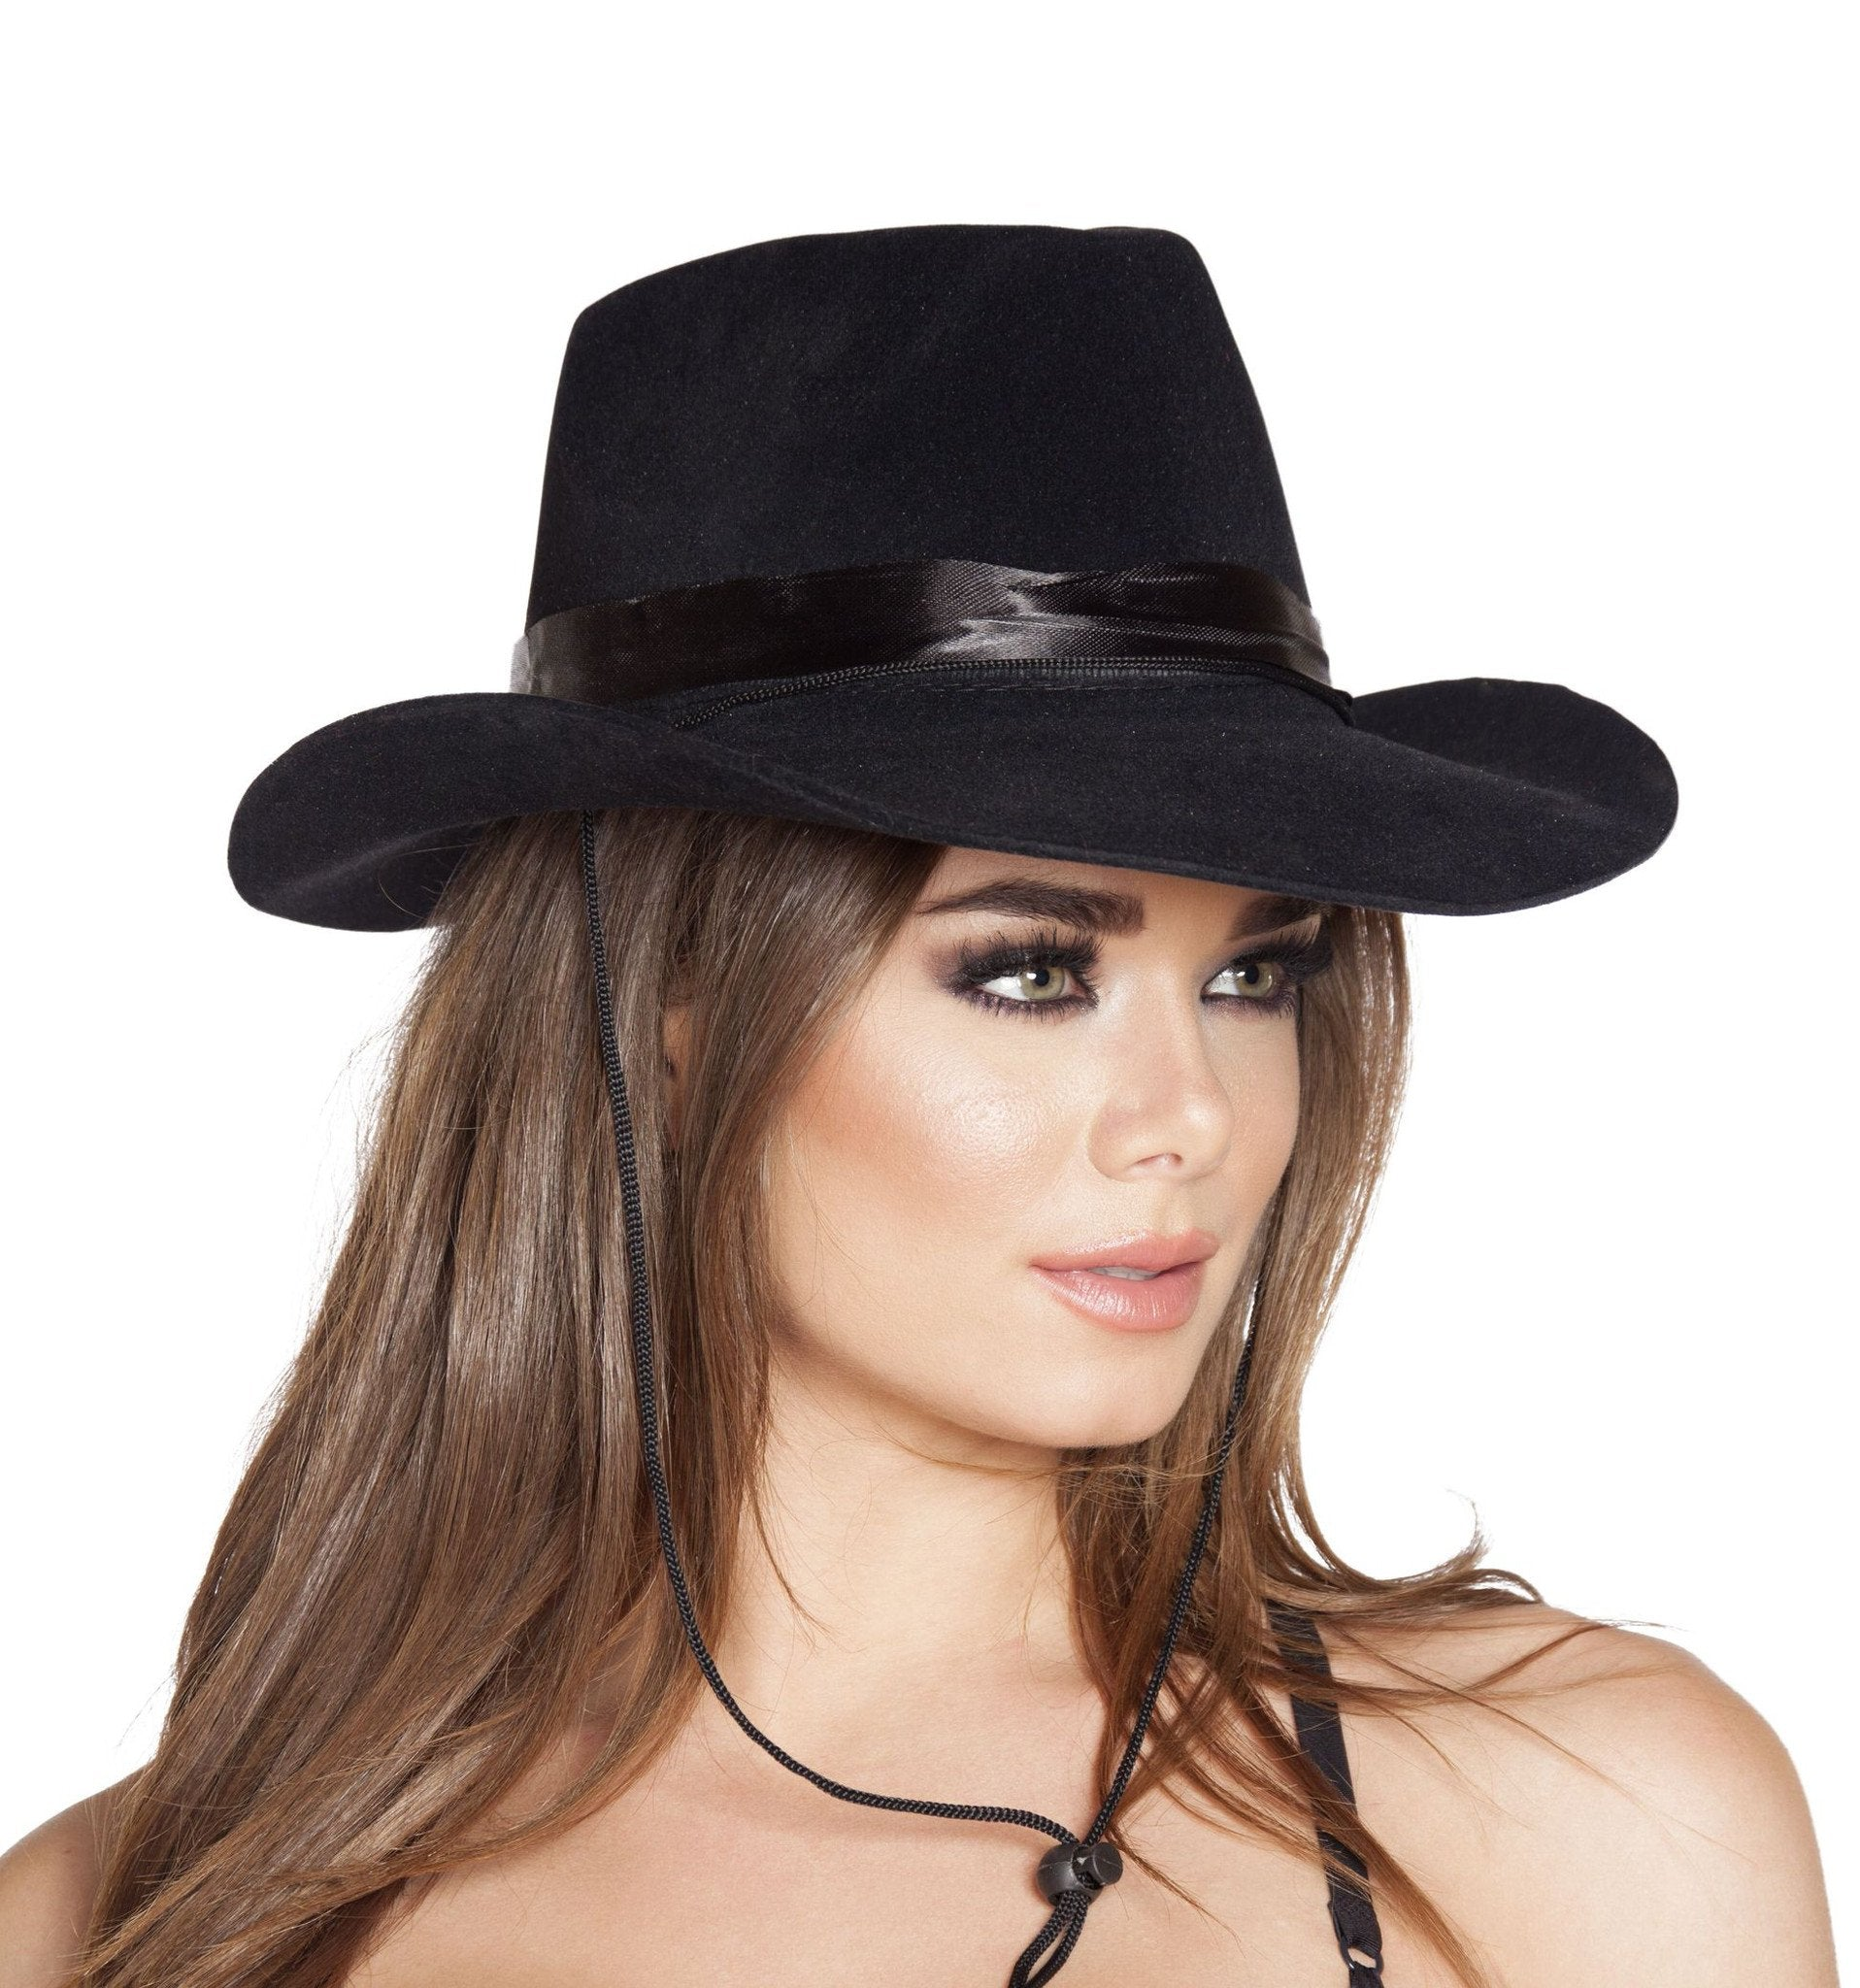 Buy Black Cowboy Hat from Rave Fix for $7.99 with Same Day Shipping Designed by Roma Costume, Inc. H4571-AS-O/S